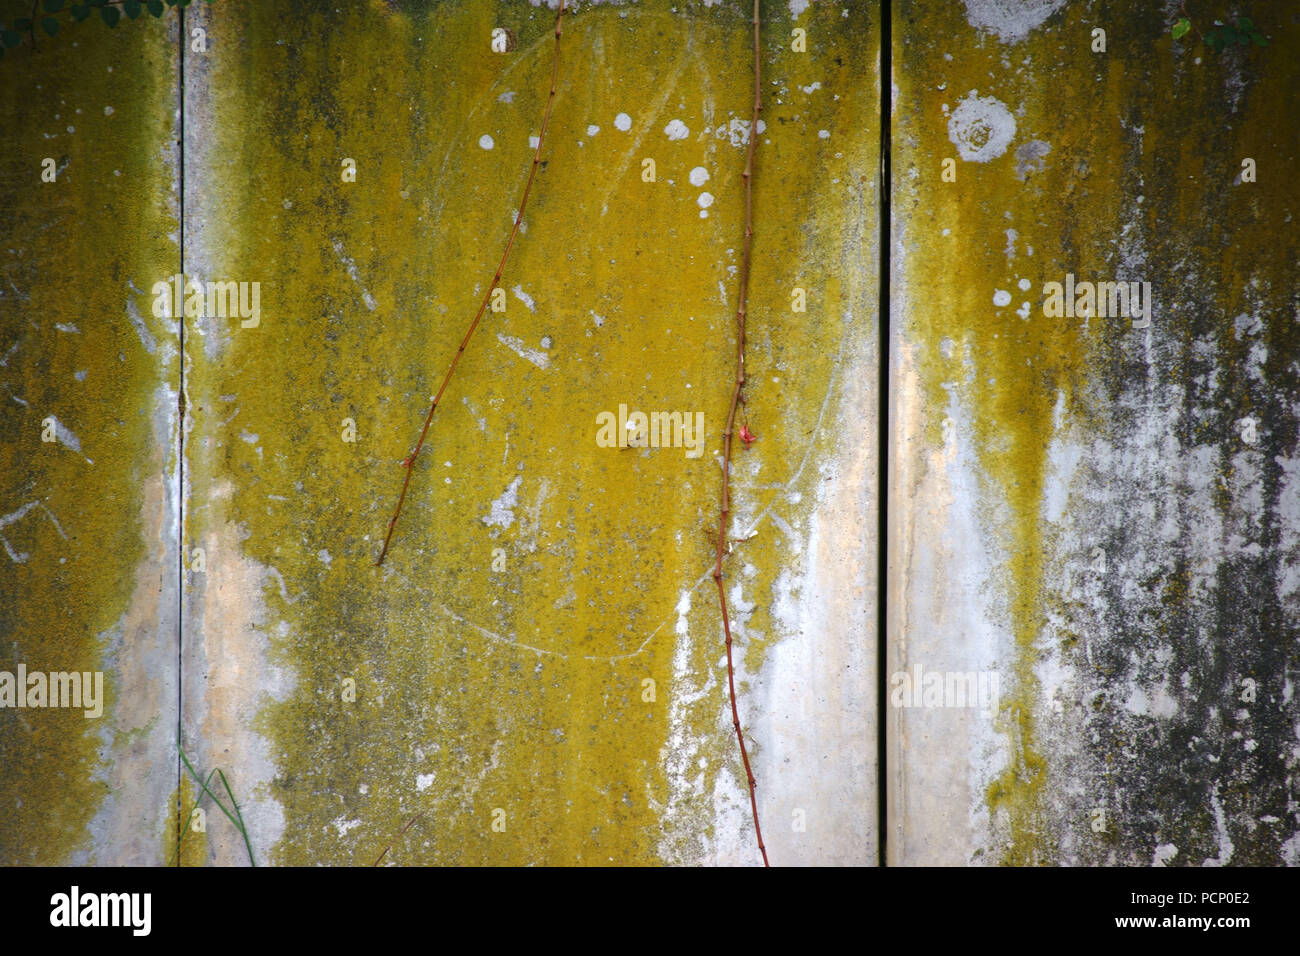 Close-up of green algae and plant remains on the surface of a wall. - Stock Image